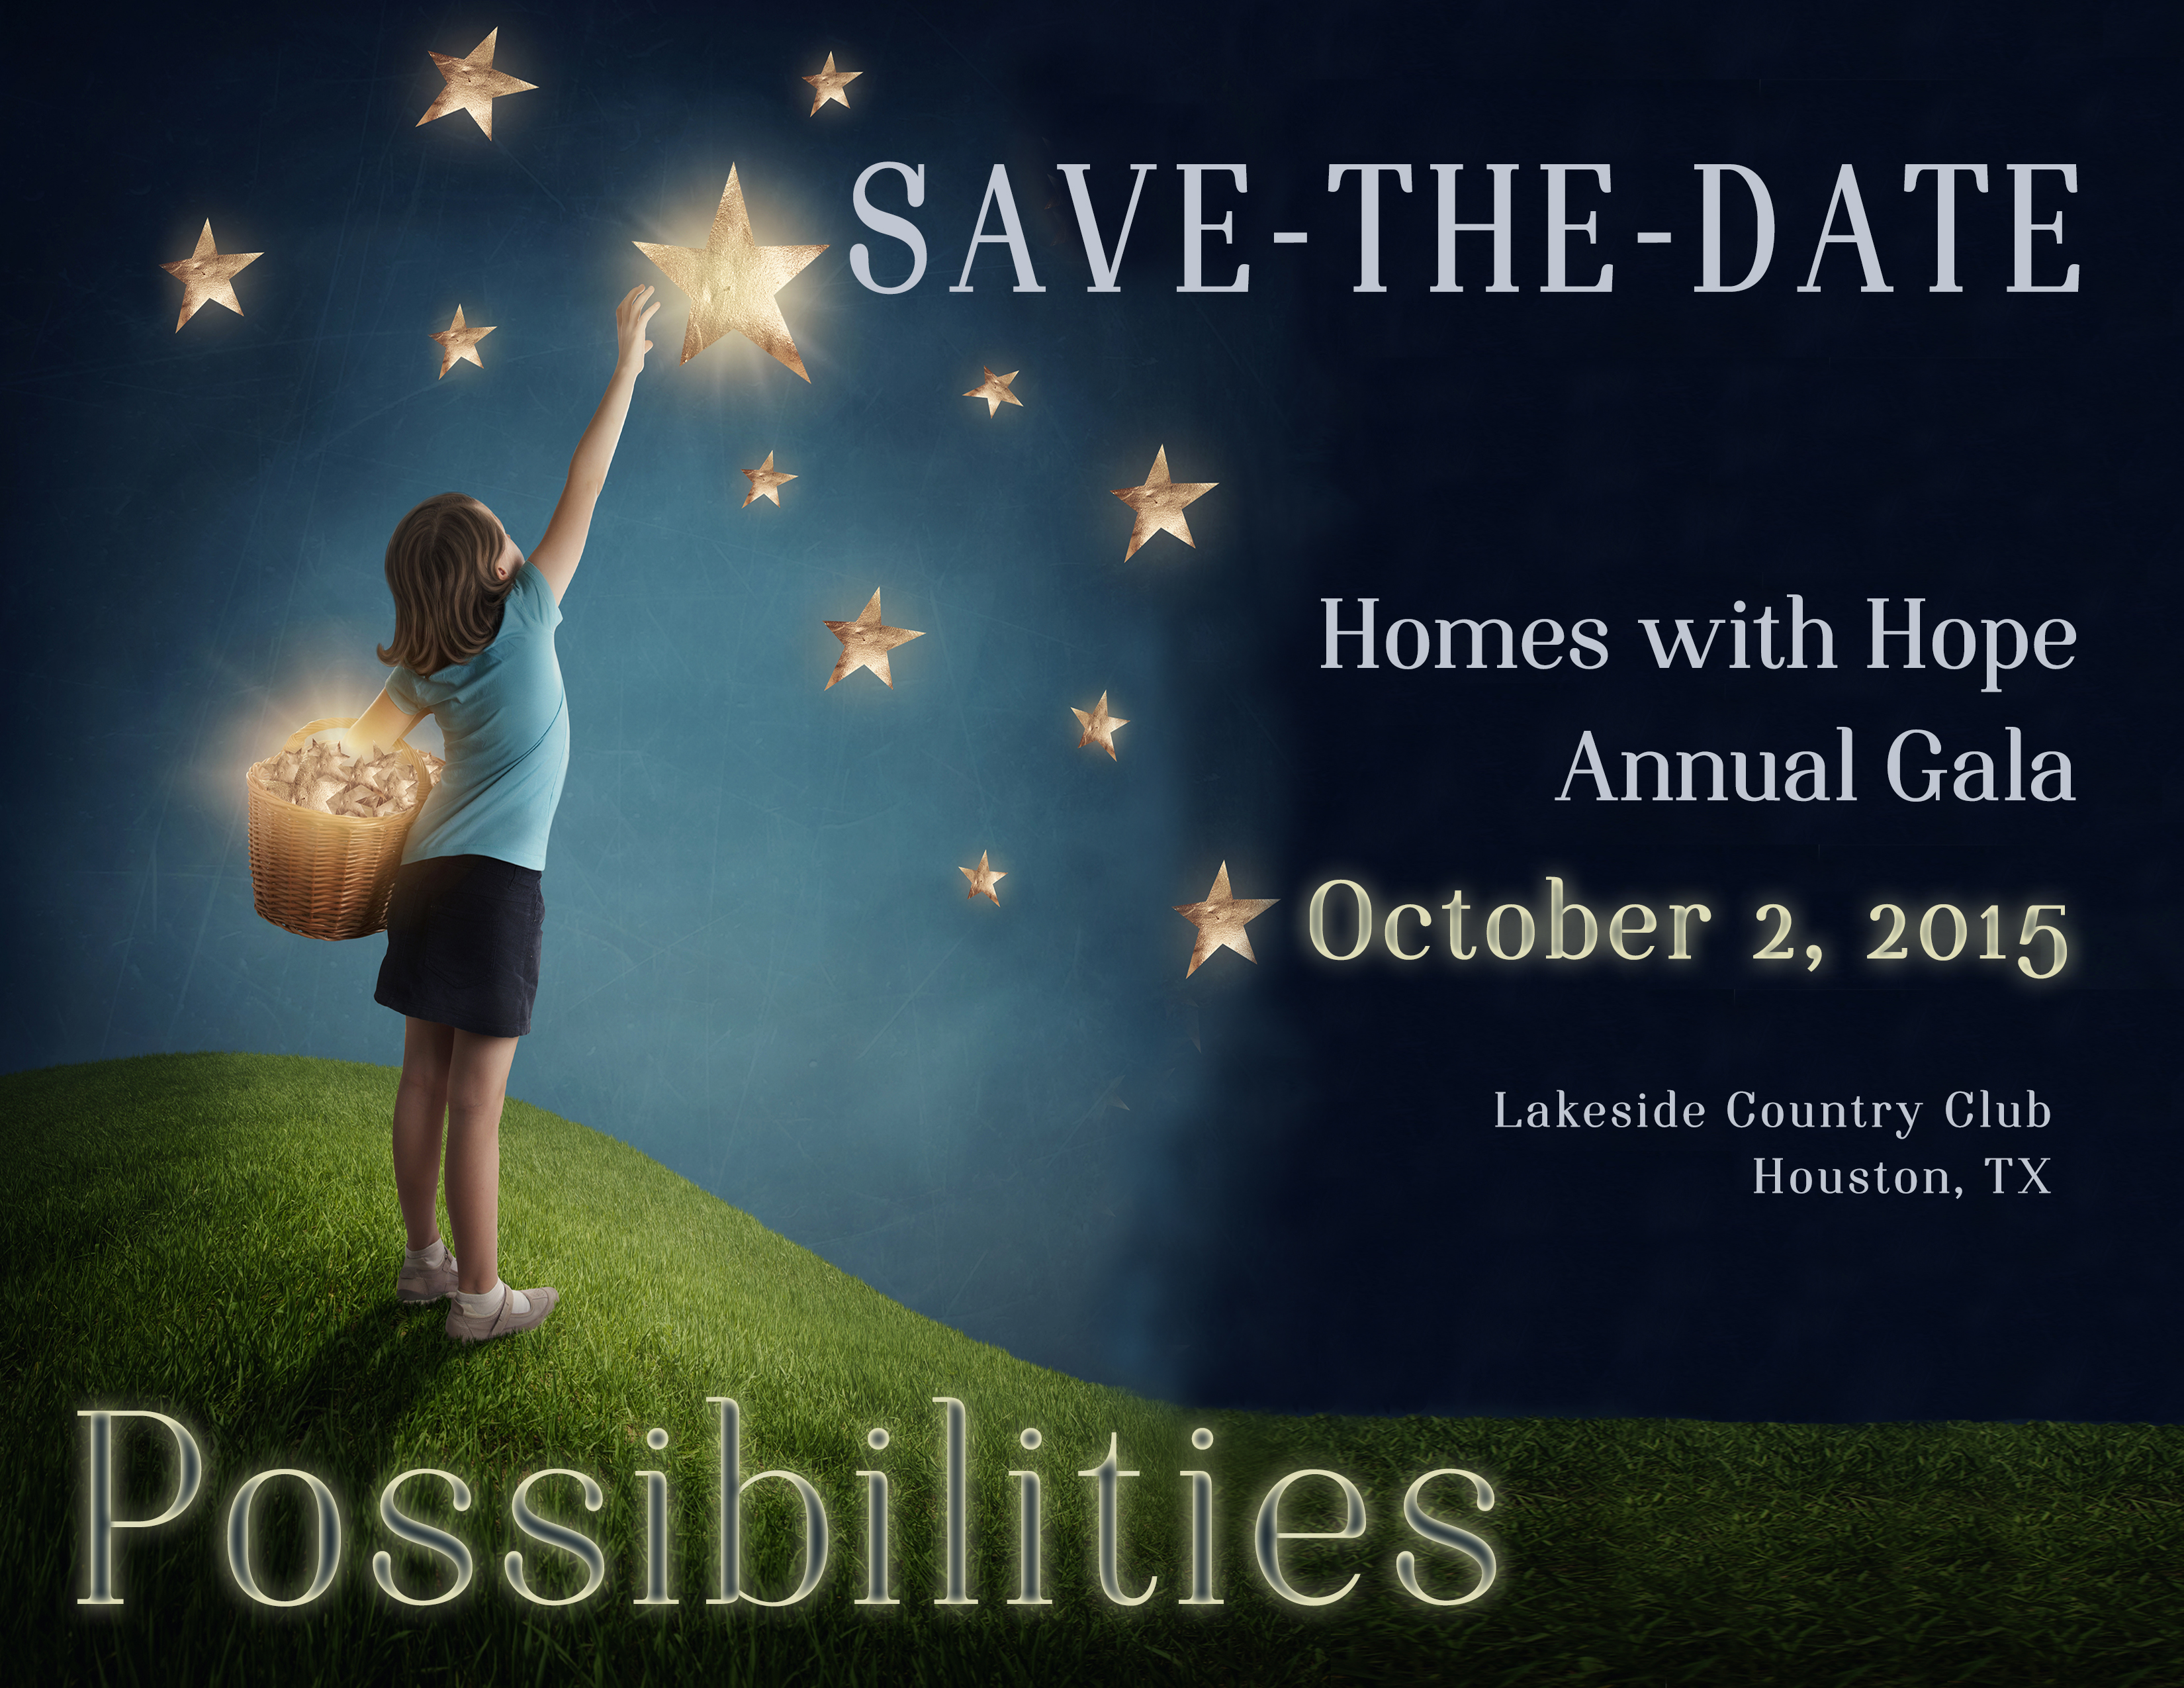 2015 Gala Possibilies - Save the date horizontal